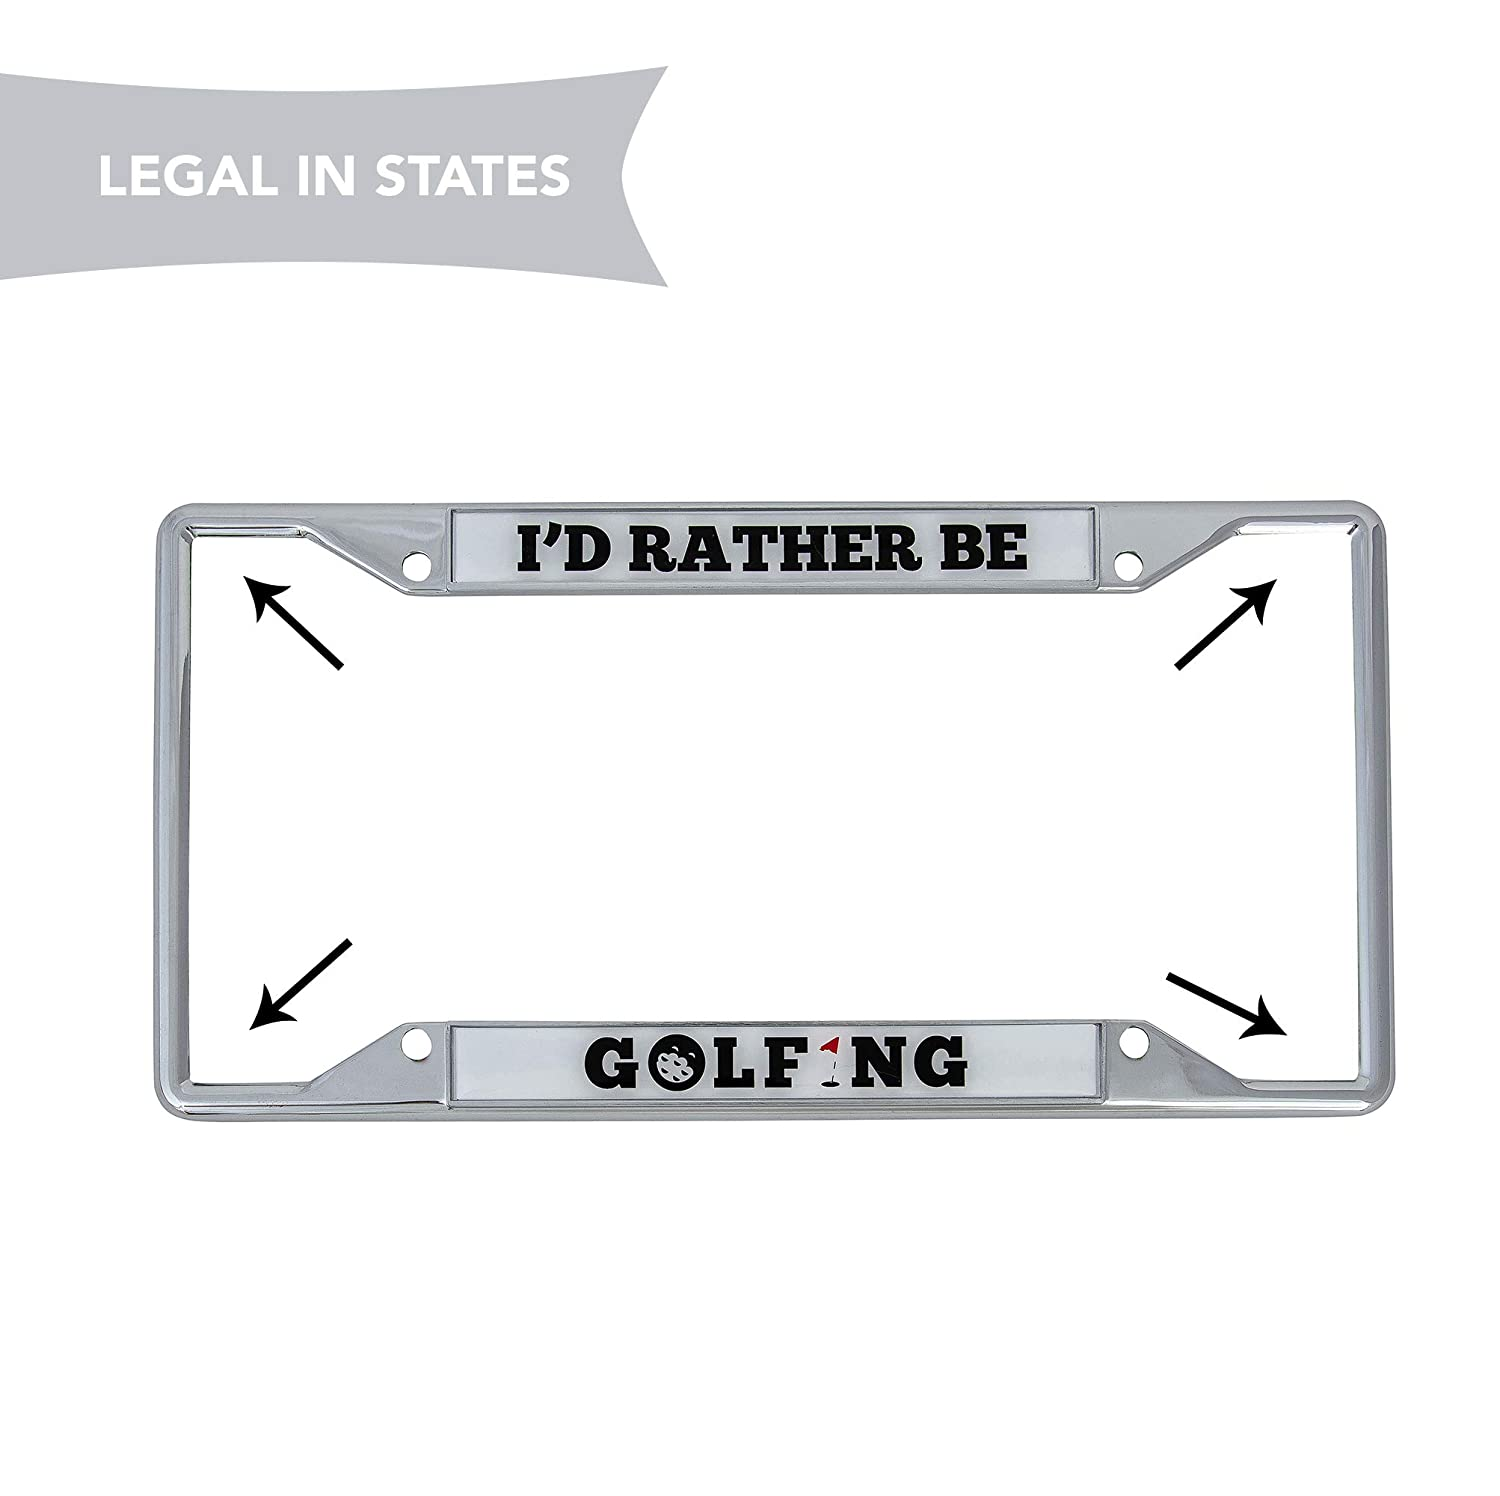 Desert Cactus Id Rather Be Golfing Metal Auto License Plate Frame Car Tag Holder